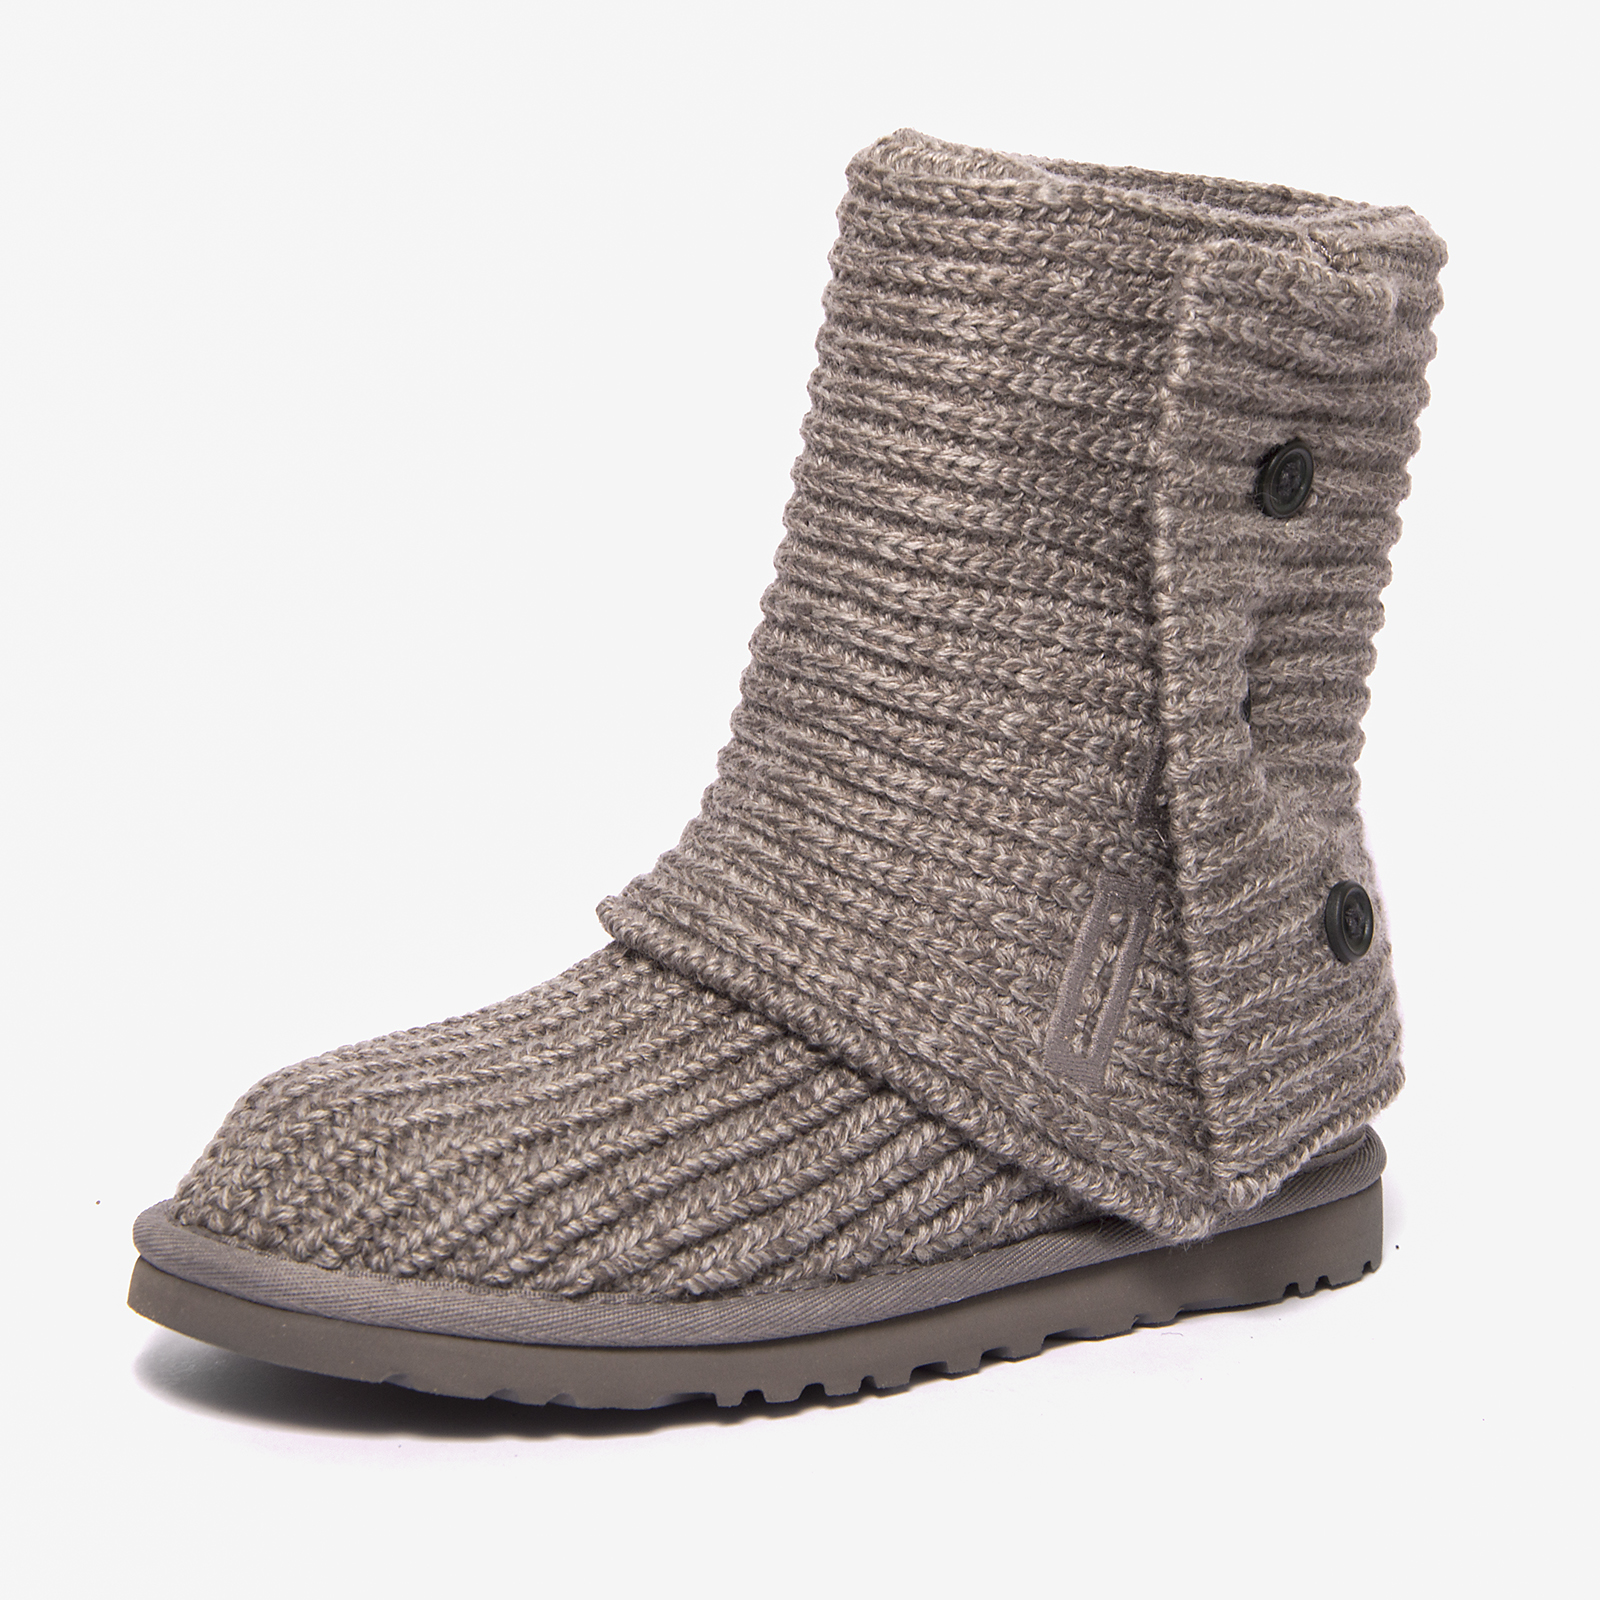 UGG shoes CLASSIC CARDY GREY WOMEN boots WOMEN's boots